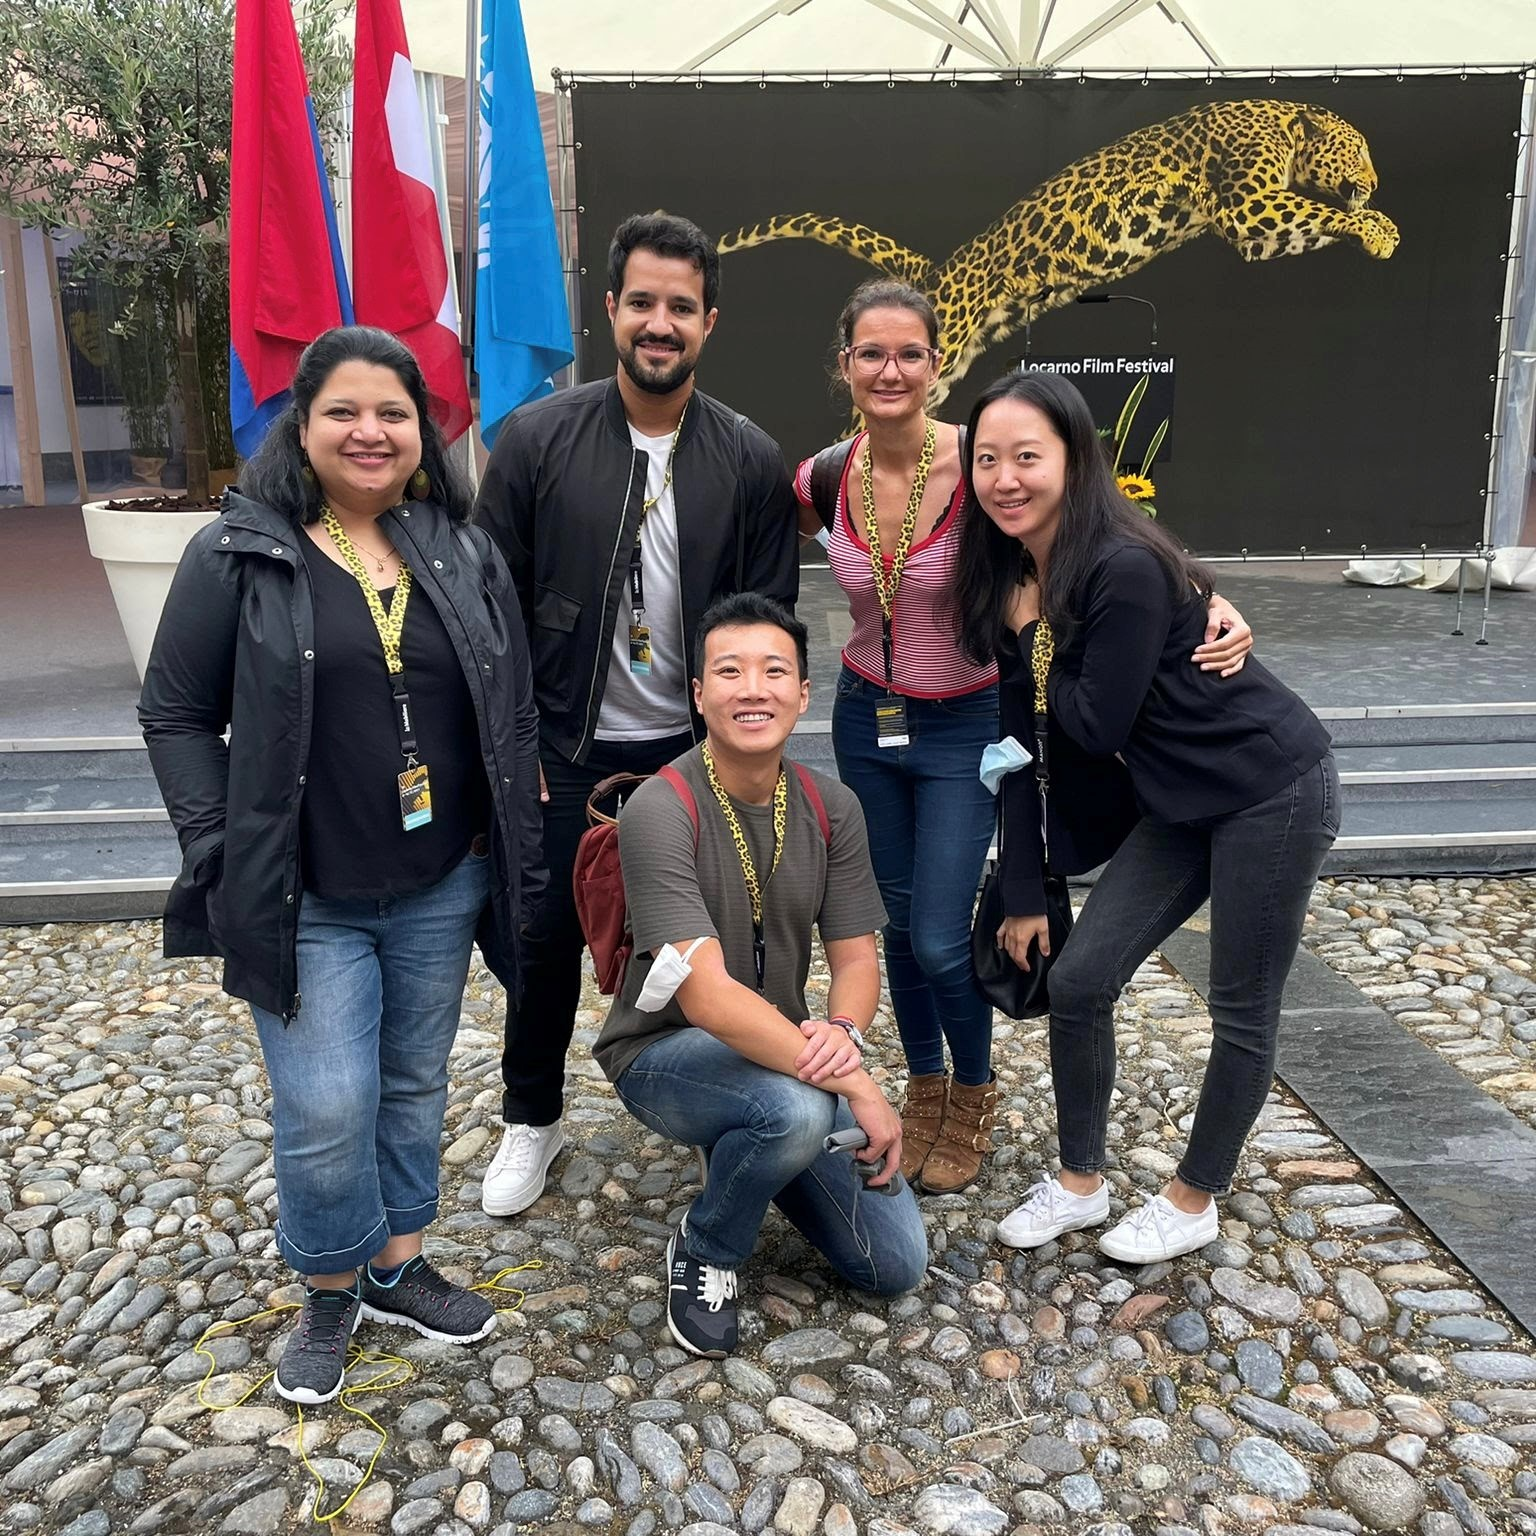 Authors in front of the Locarno Film Festival ad